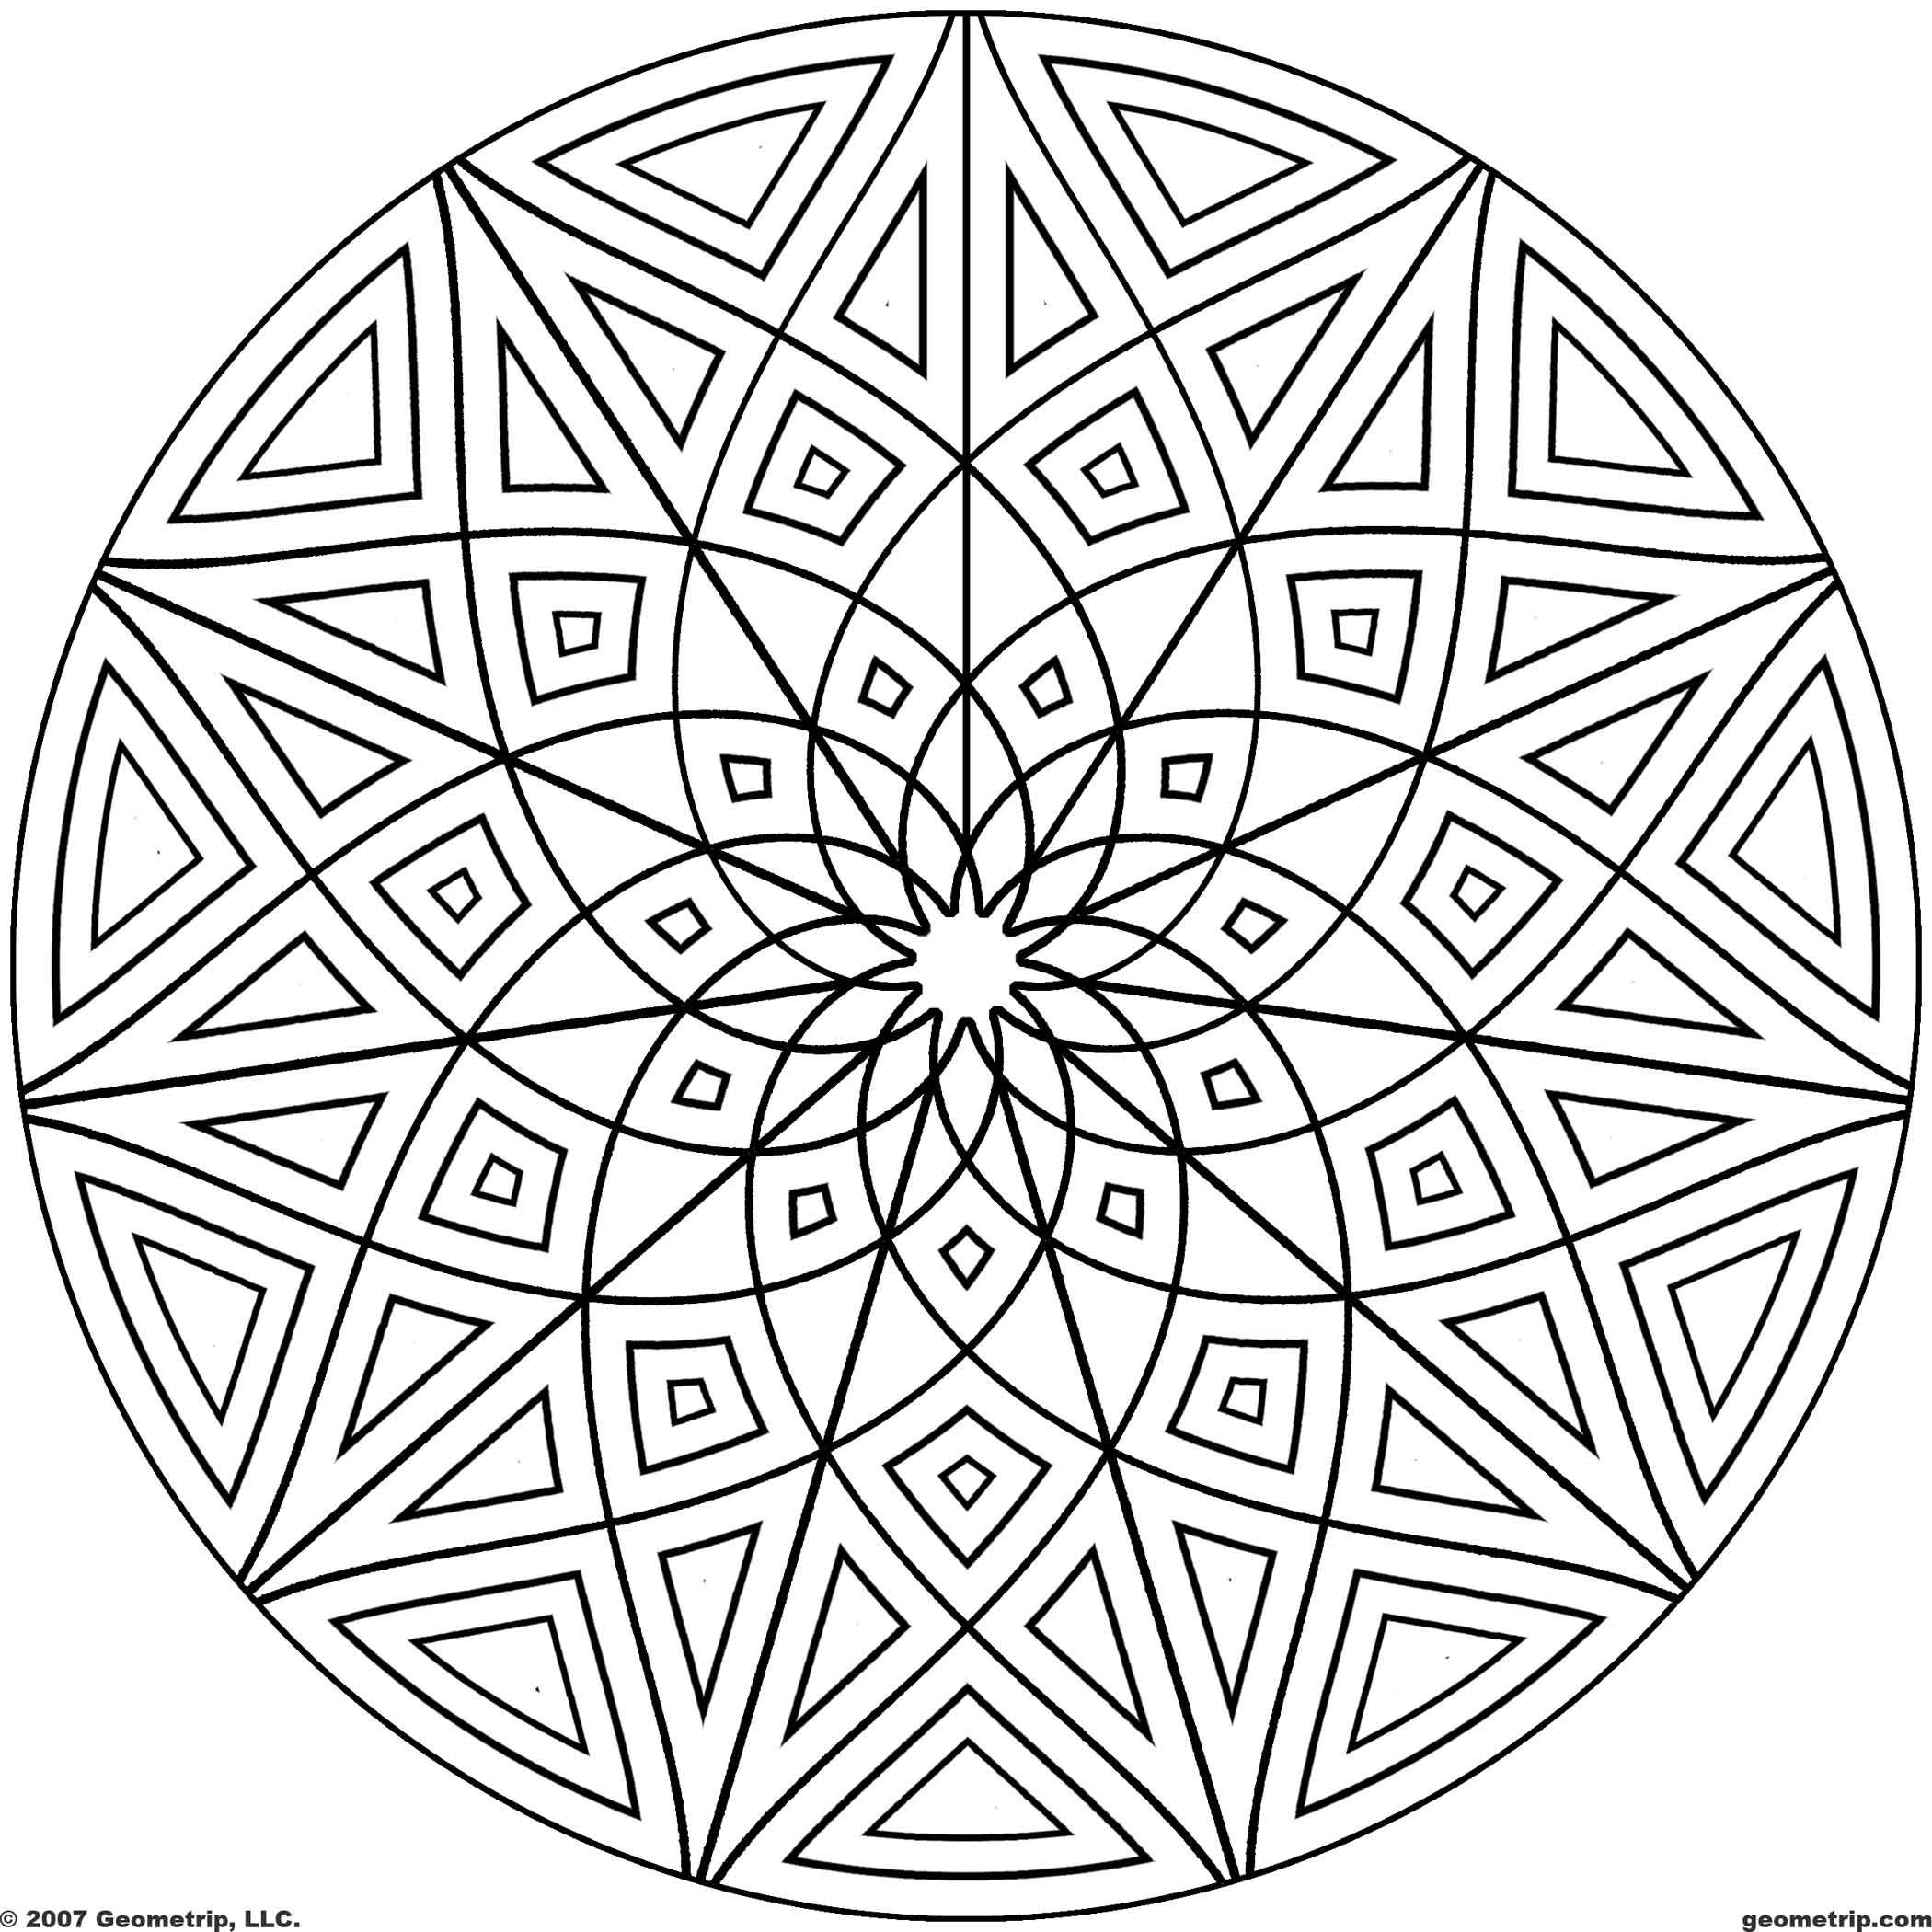 Uncategorized Free Coloring Pages Designs kaleidoscope coloring pages geometrip com free geometric designs circles